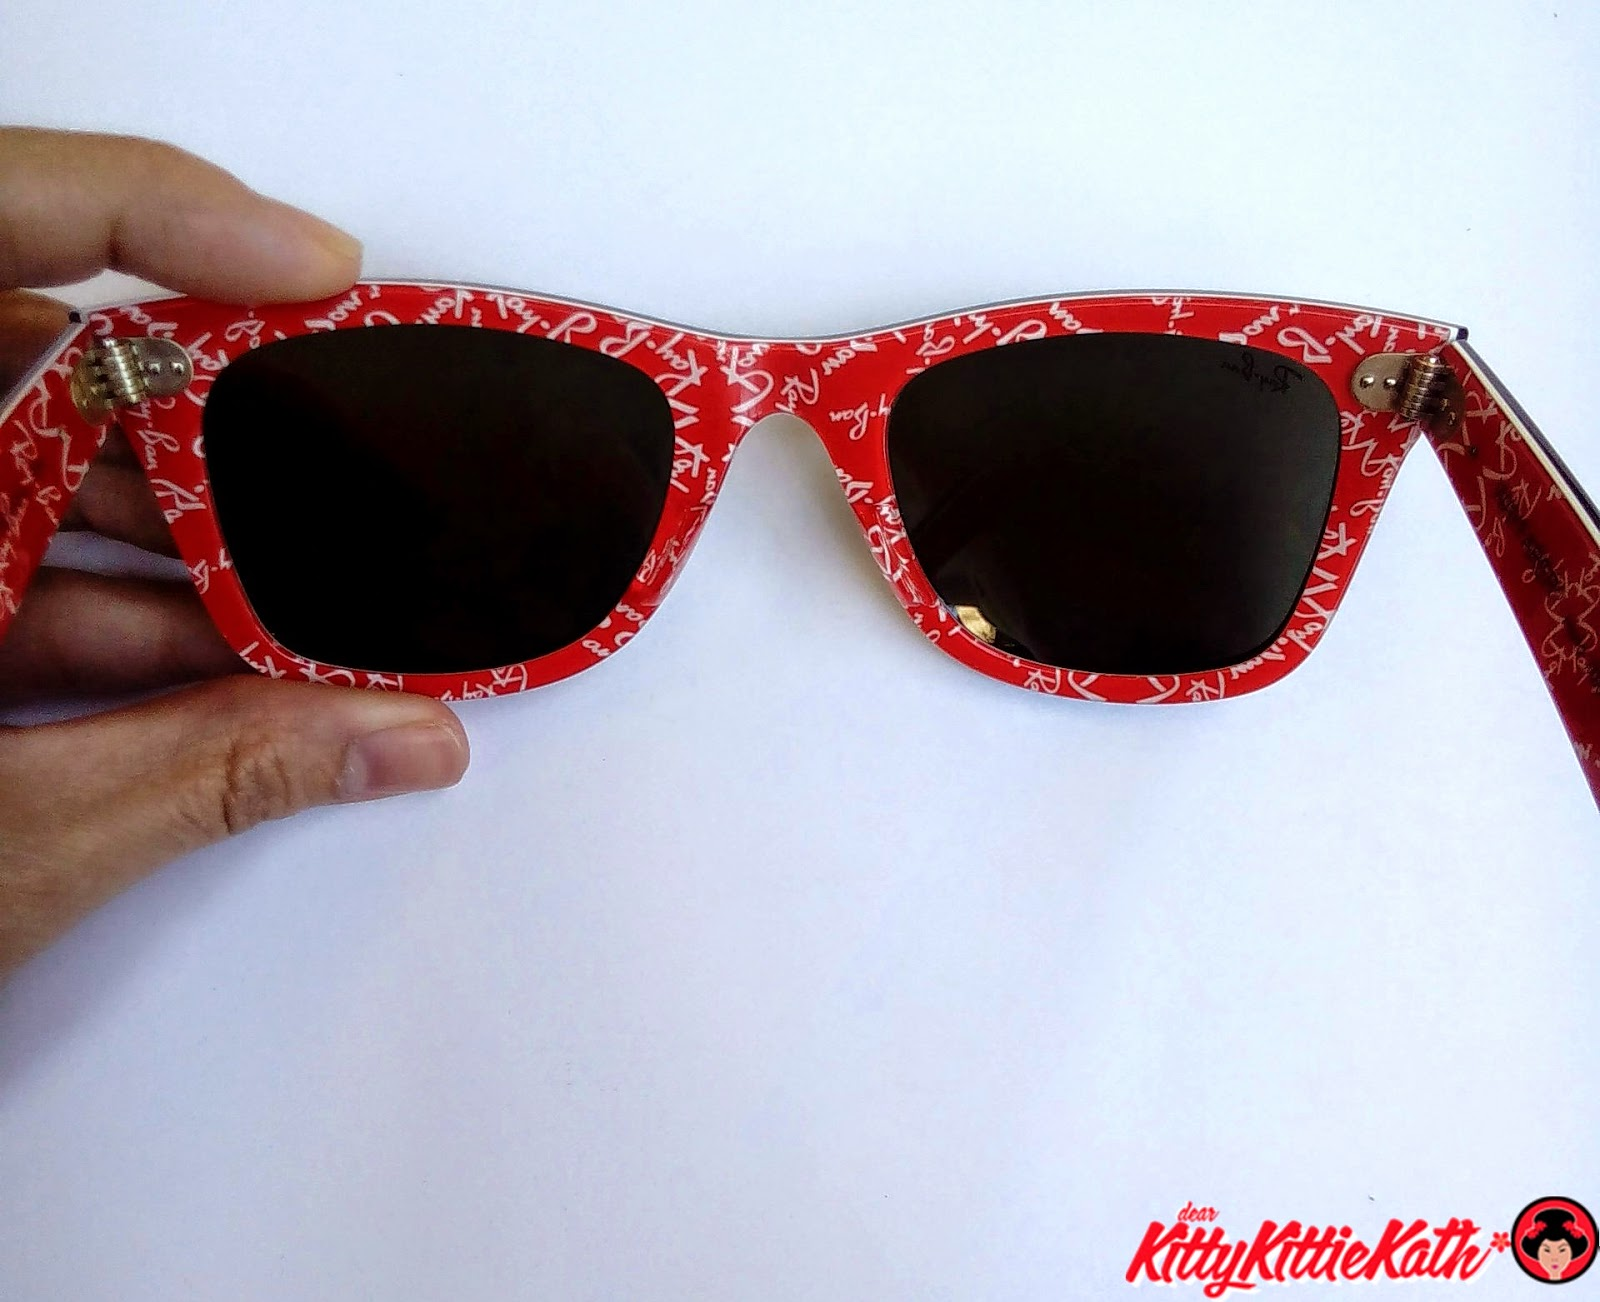 f35d9efe66 Ray-Ban Wayfarer Love from Glasses Online Philippines Ray-Ban RB2140  Original Wayfarer Rare Prints Special Series Logomania 1016